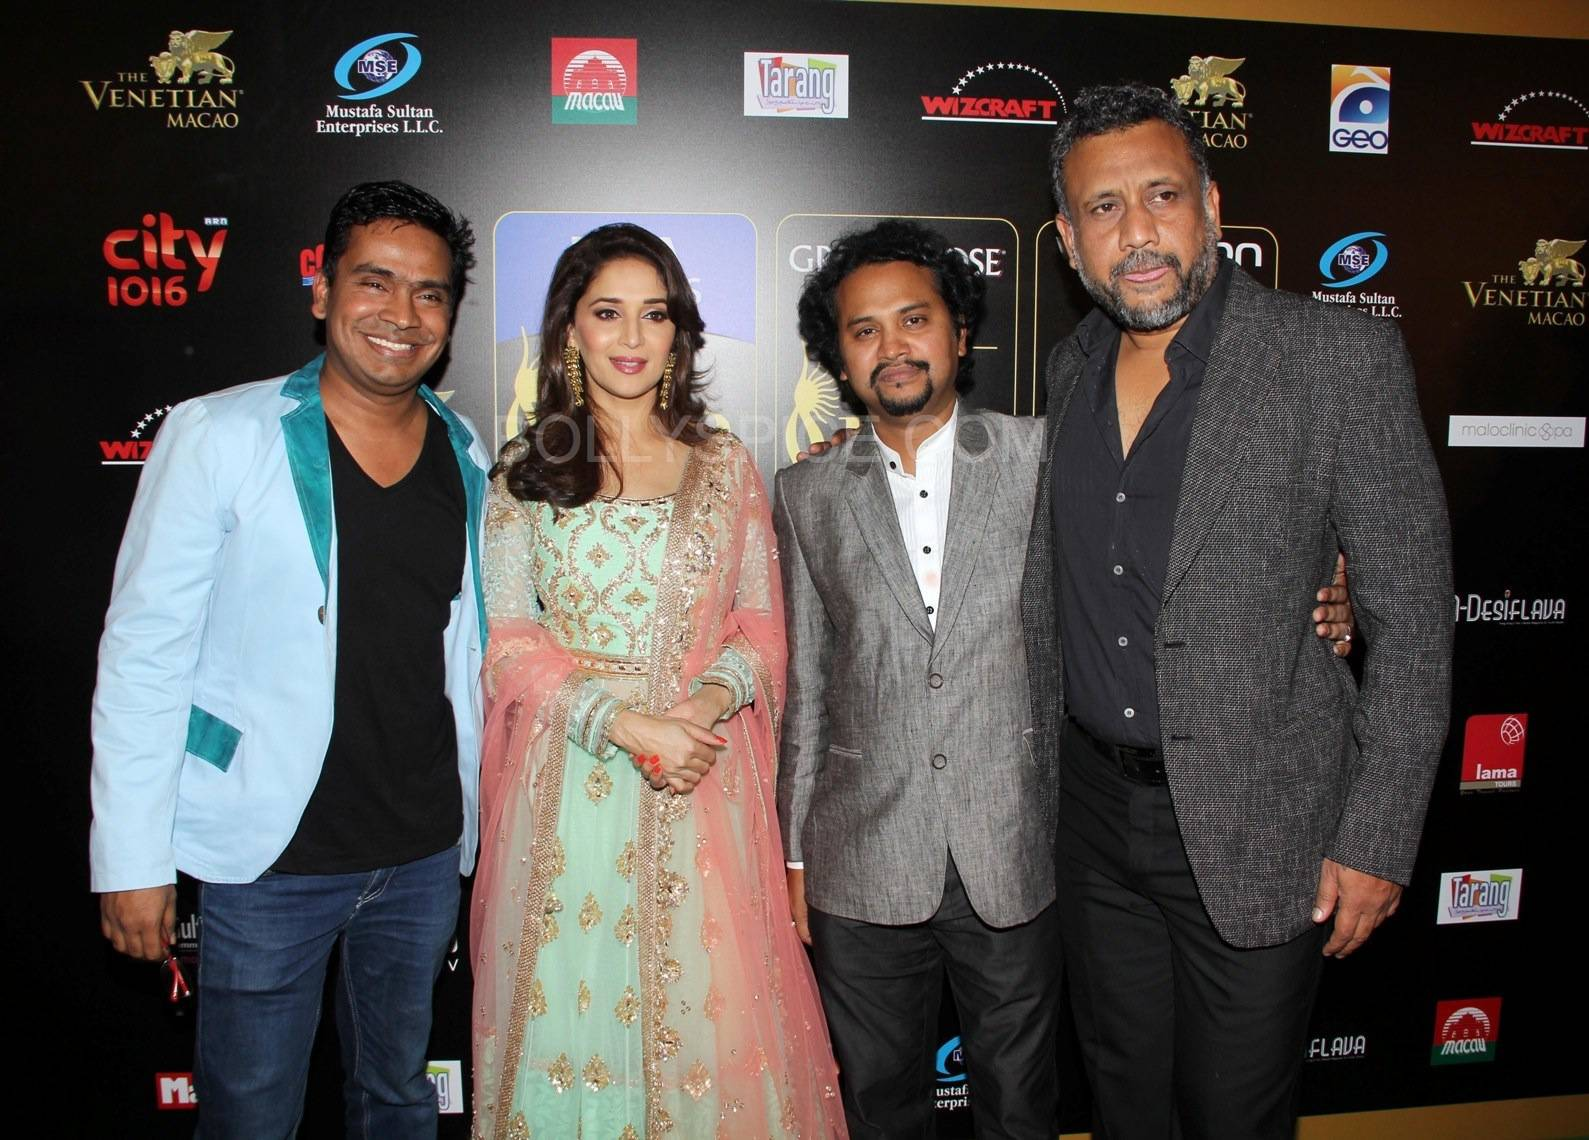 Gulab Gang team Madhuri Dixit Nene Somik Sen Anubhav Sinha at IIFA Rocks Green carpet More from IIFA Rocks including winners and more Green Carpet pics! Pics added!